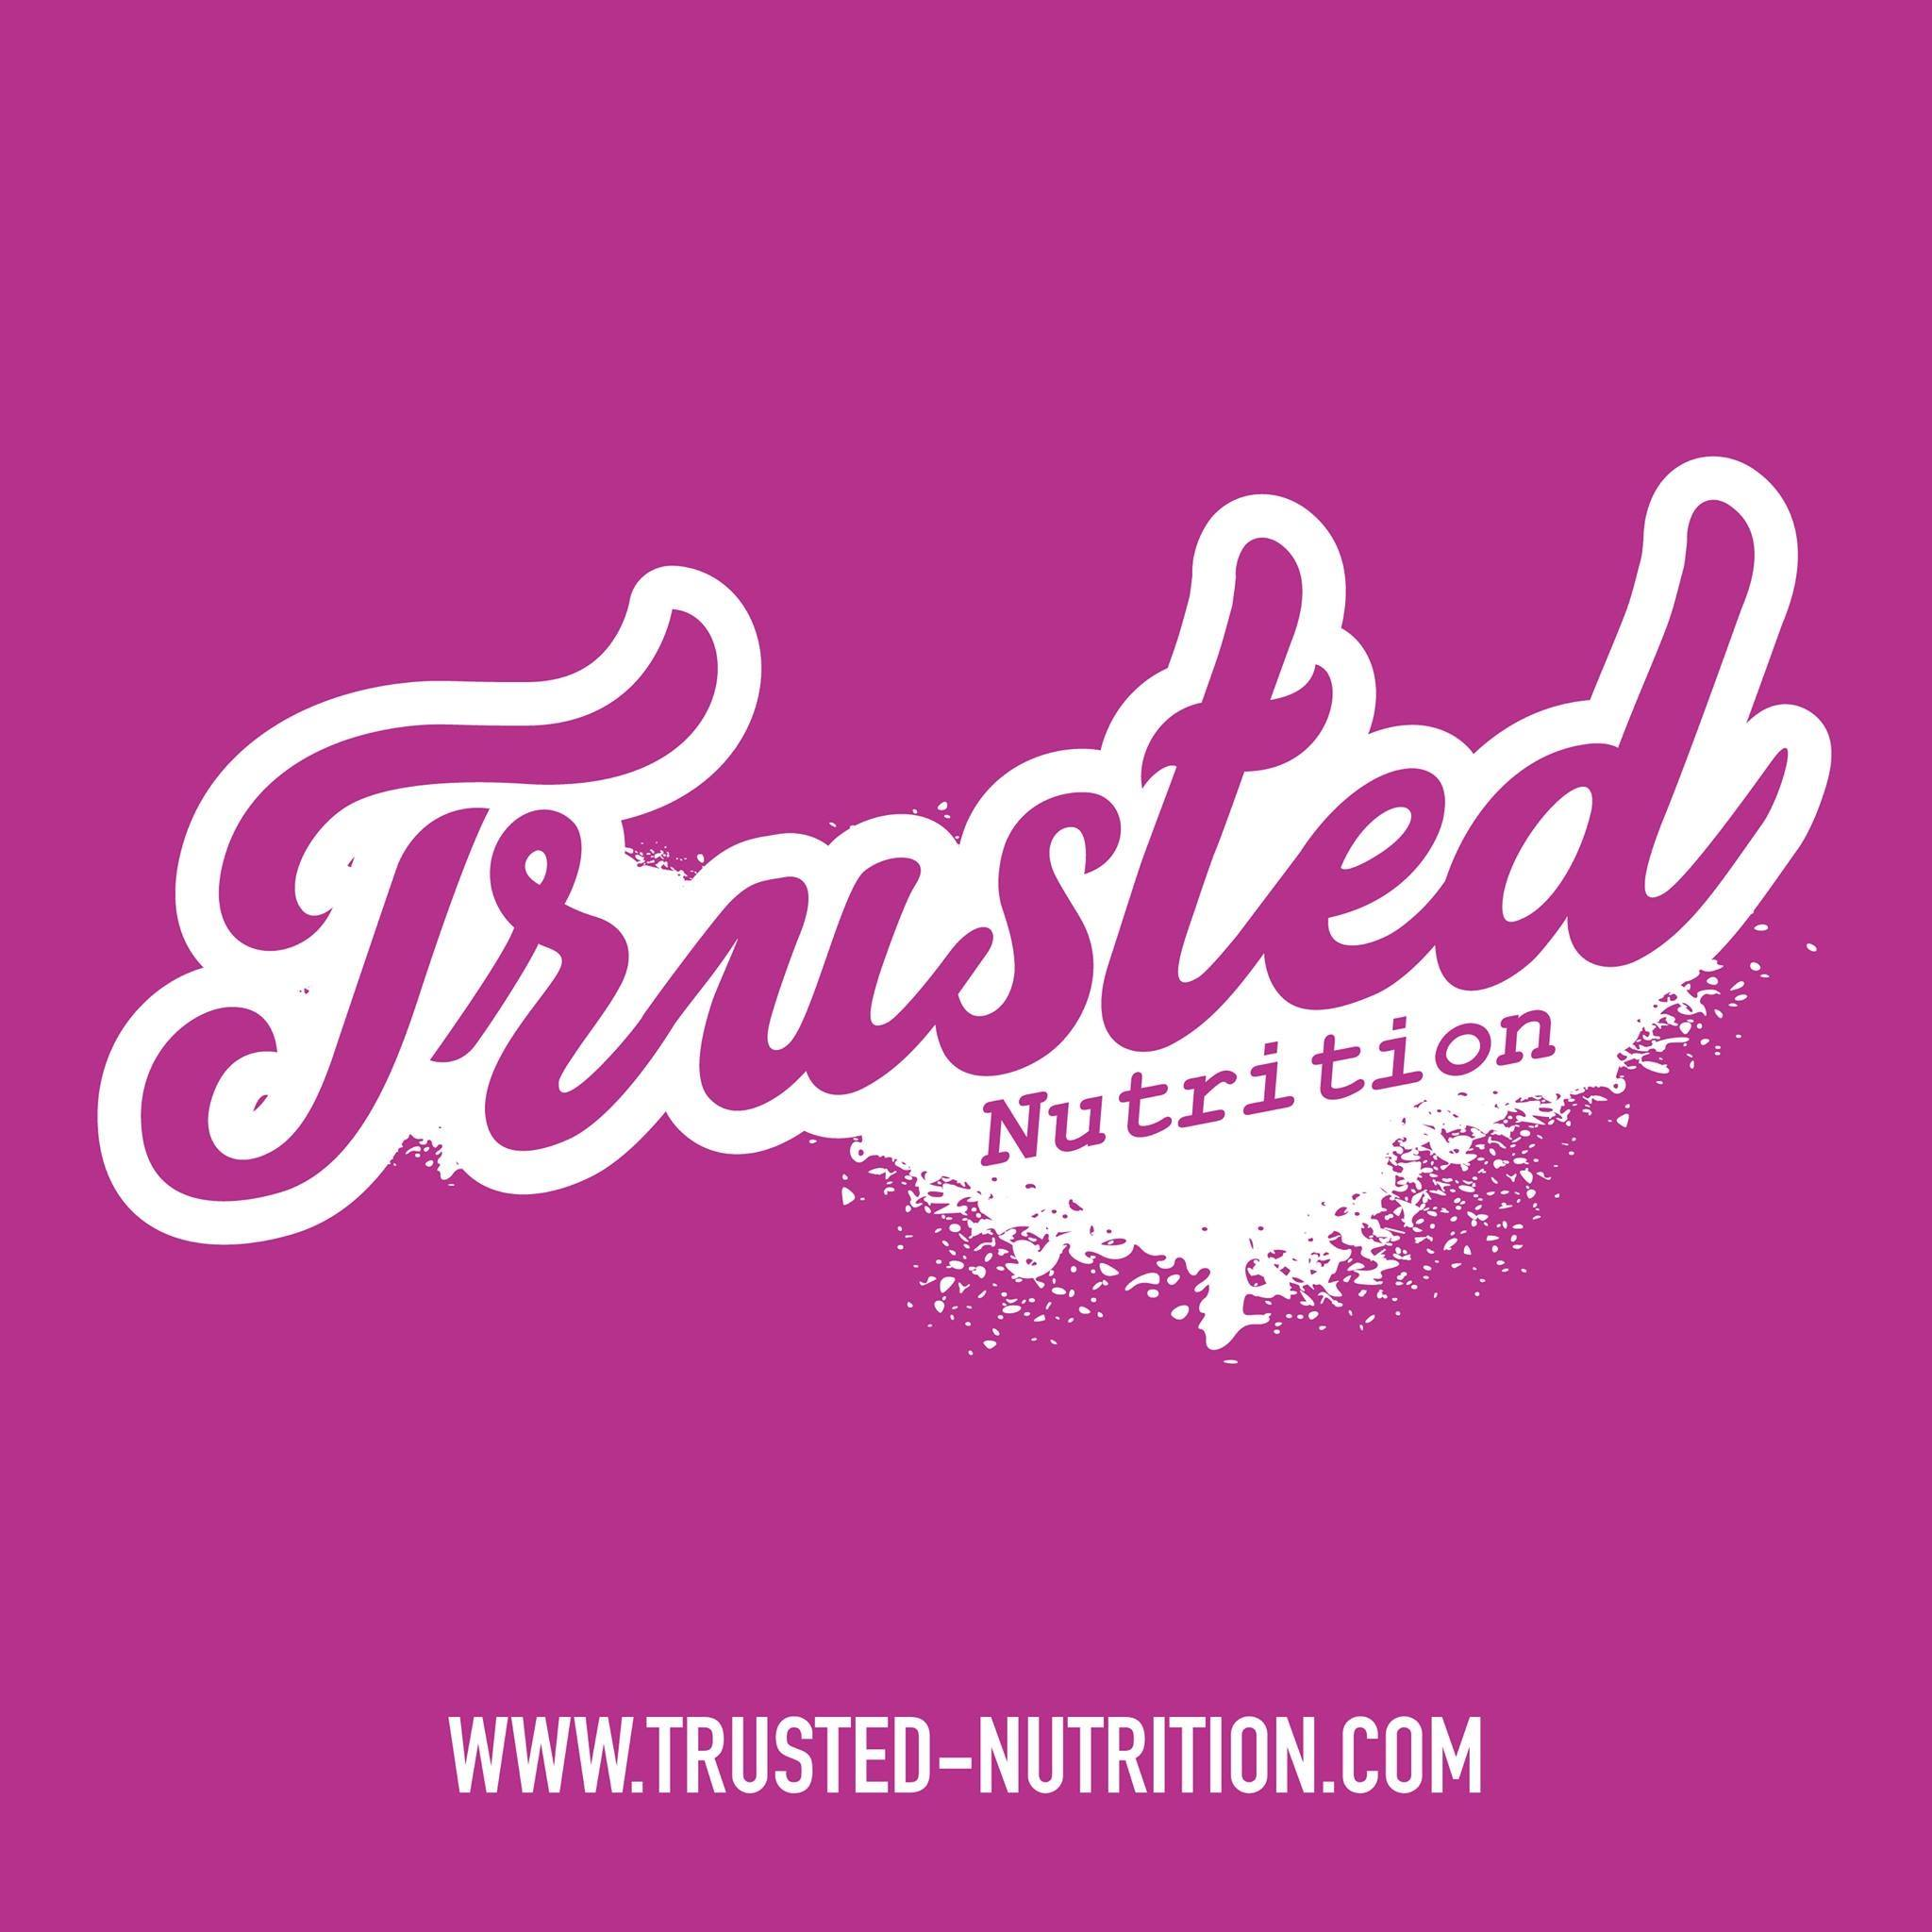 Trusted Nutrition